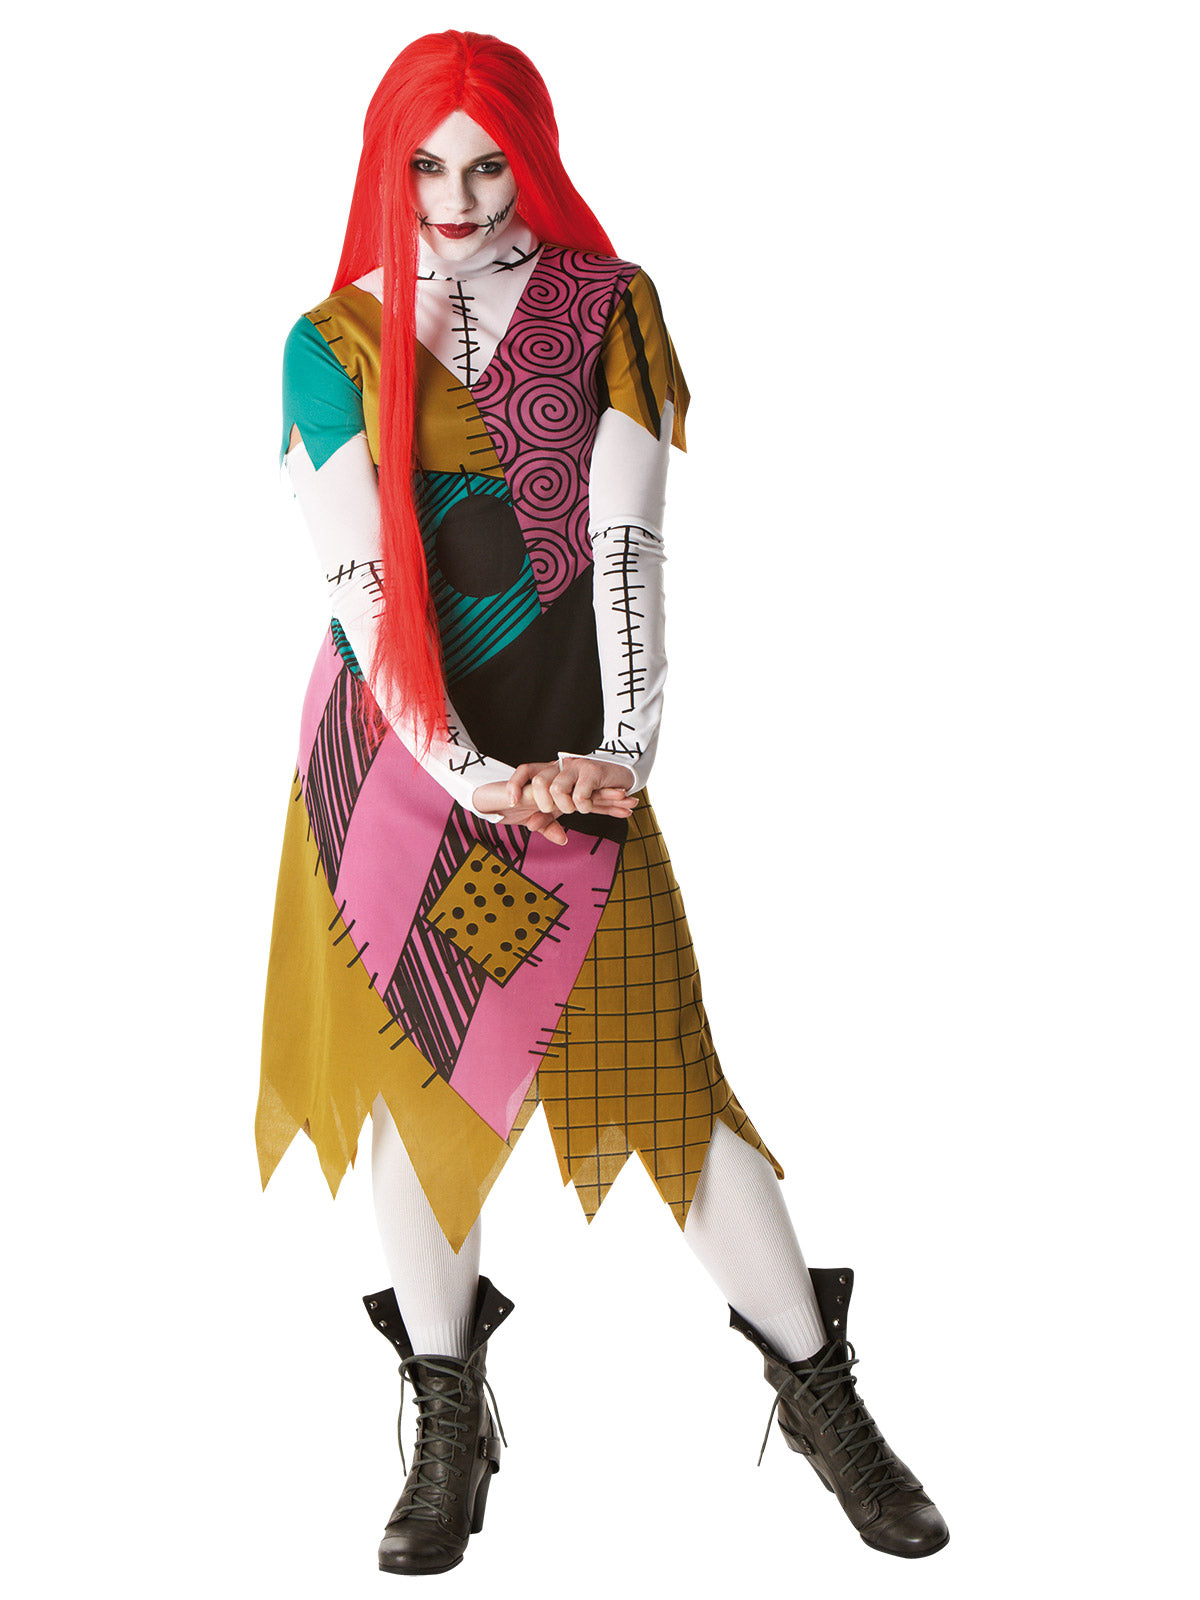 Sally Finkelstein A nightmare before Christmas Costume - Buy Online Only